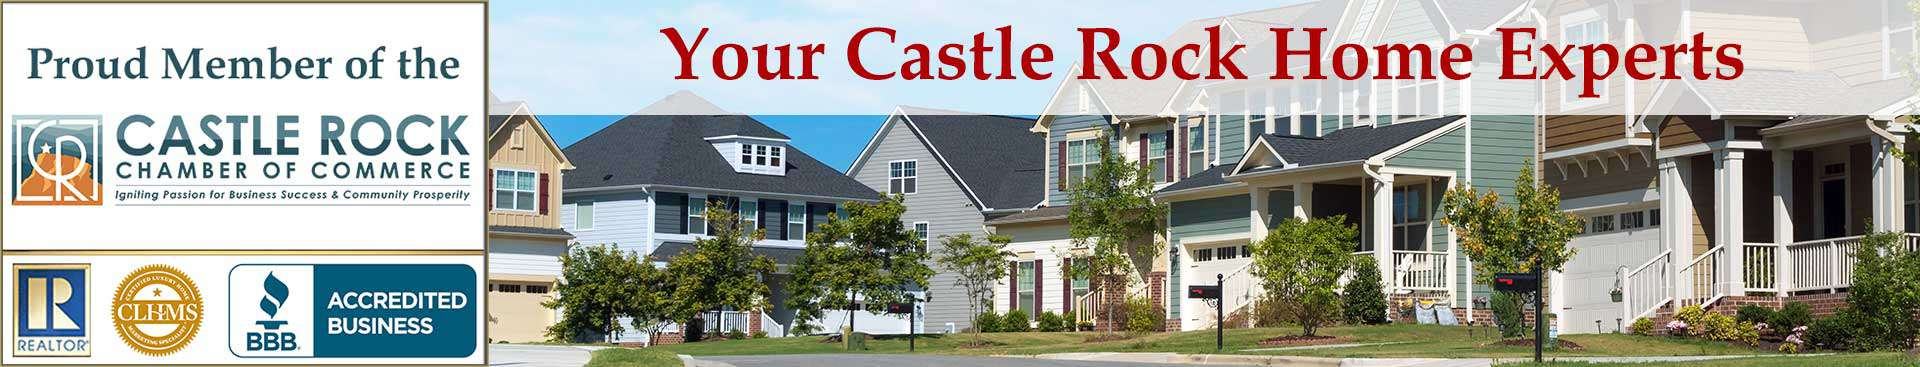 Castle Rock CO Organizational Banner